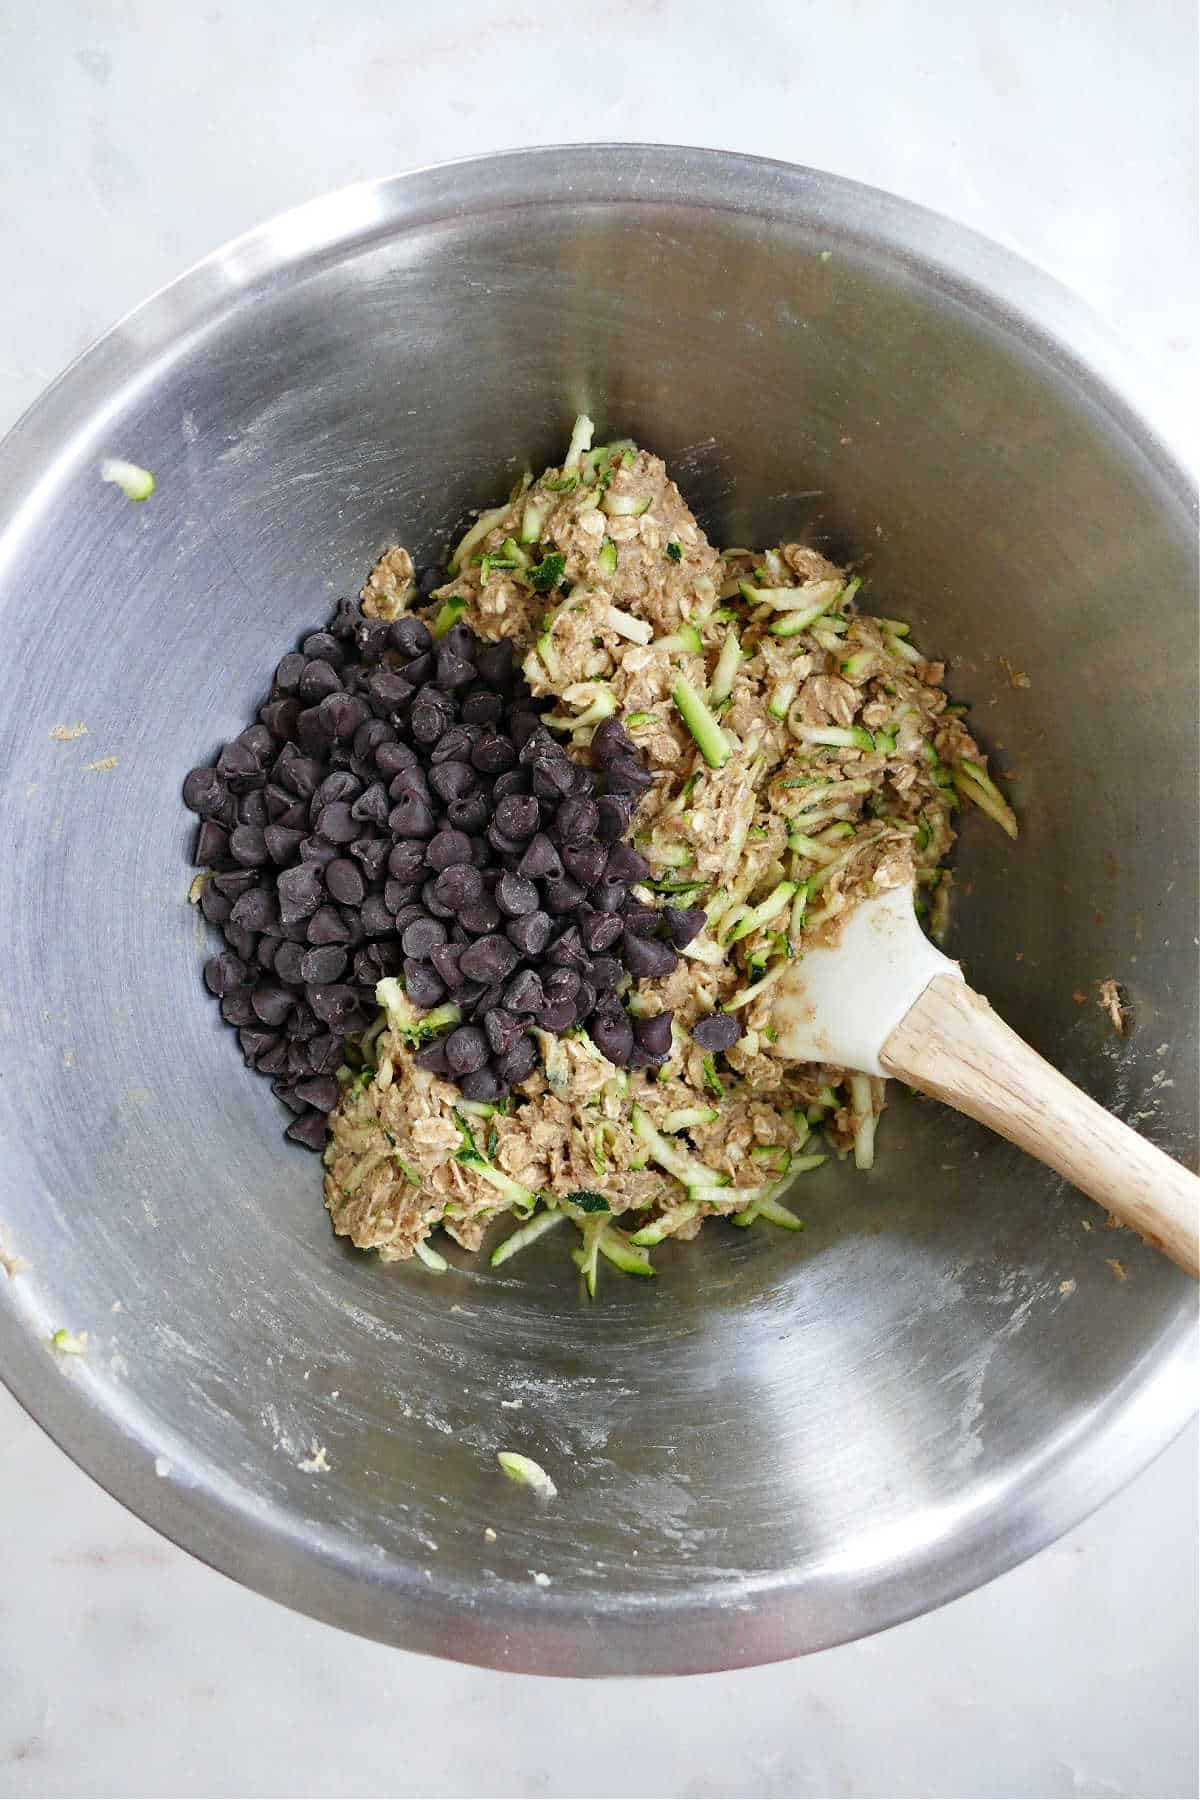 shredded zucchini and chocolate chips being mixed into cookie batter with a spatula